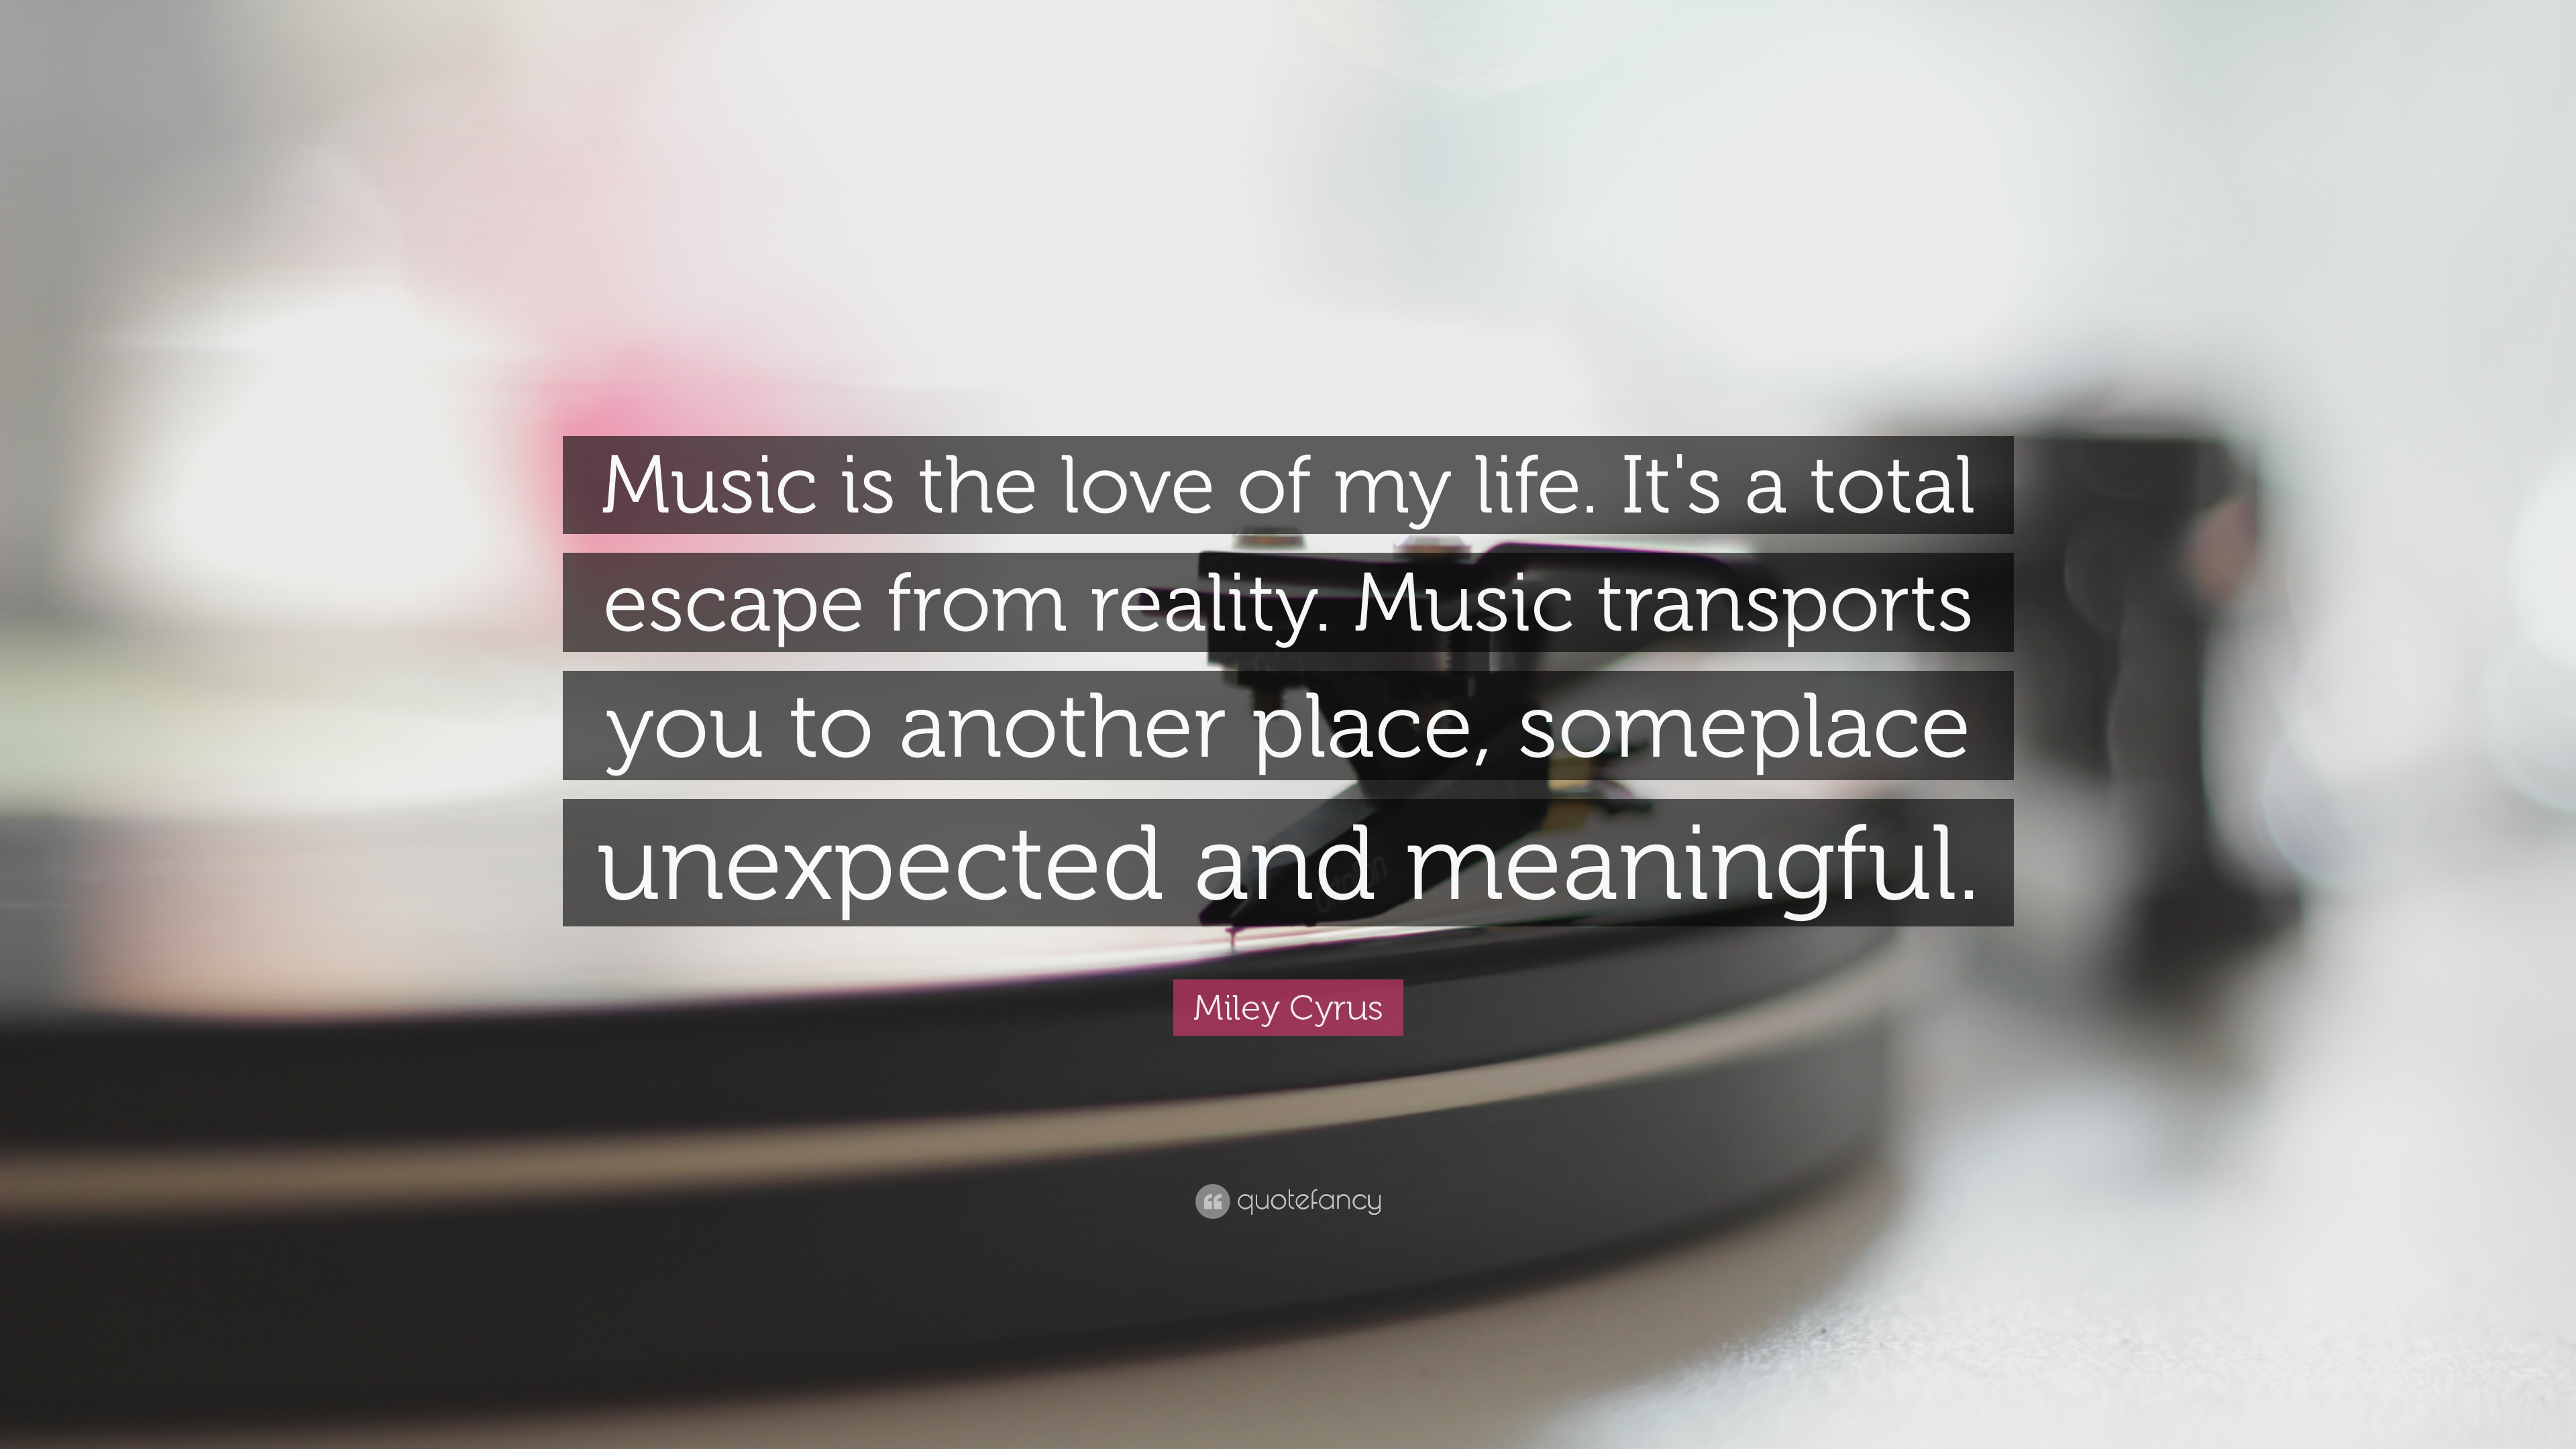 Miley Cyrus Quote Music Is The Love Of My Life It S A Total Escape From Reality Music Transports You To Another Place Someplace Unexpec 12 Wallpapers Quotefancy